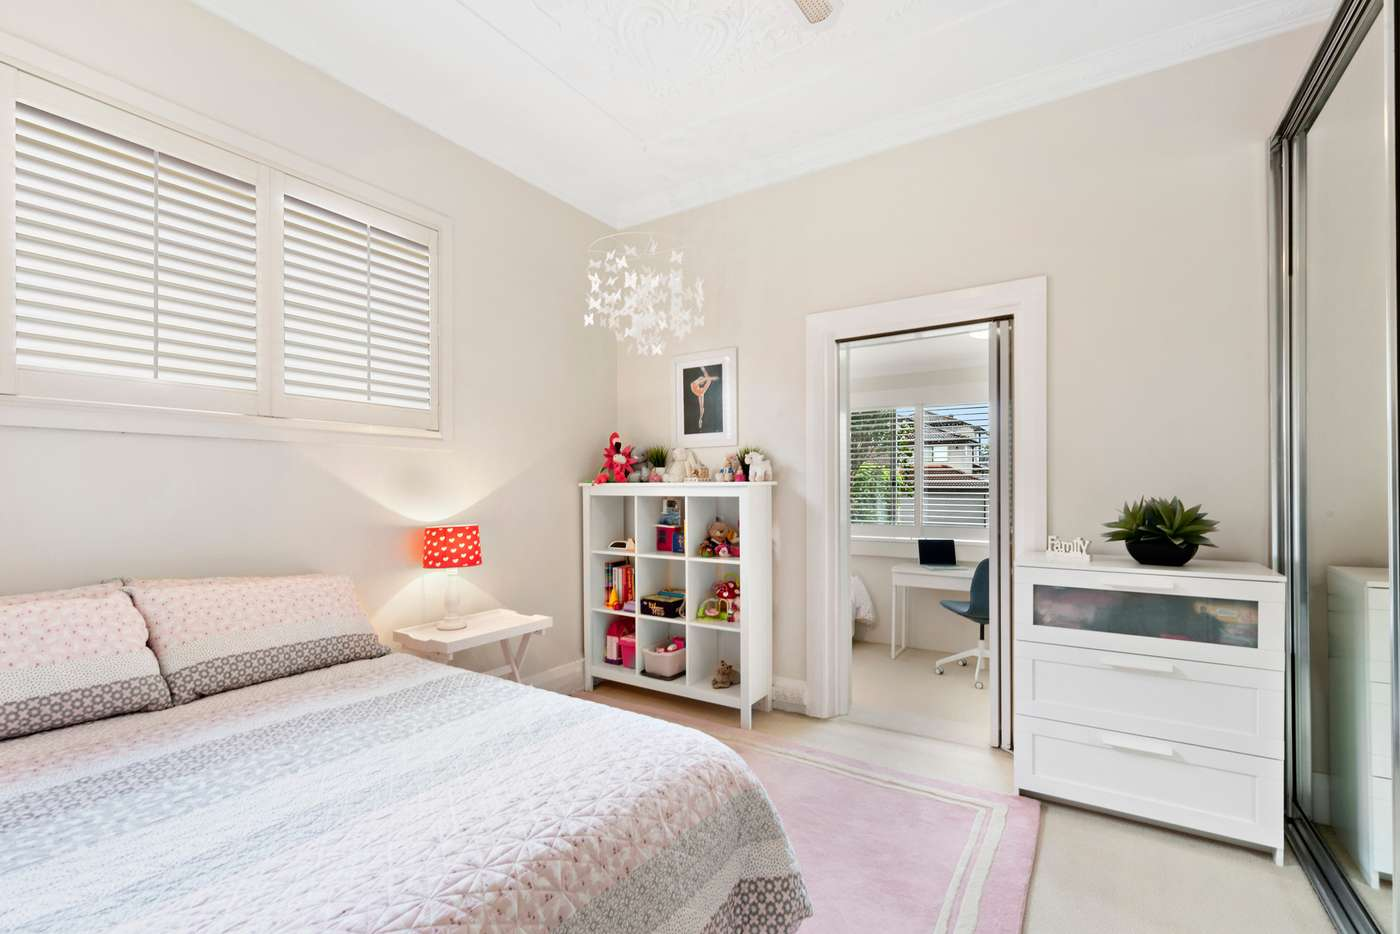 Fifth view of Homely house listing, 66 Flavelle Street, Concord NSW 2137